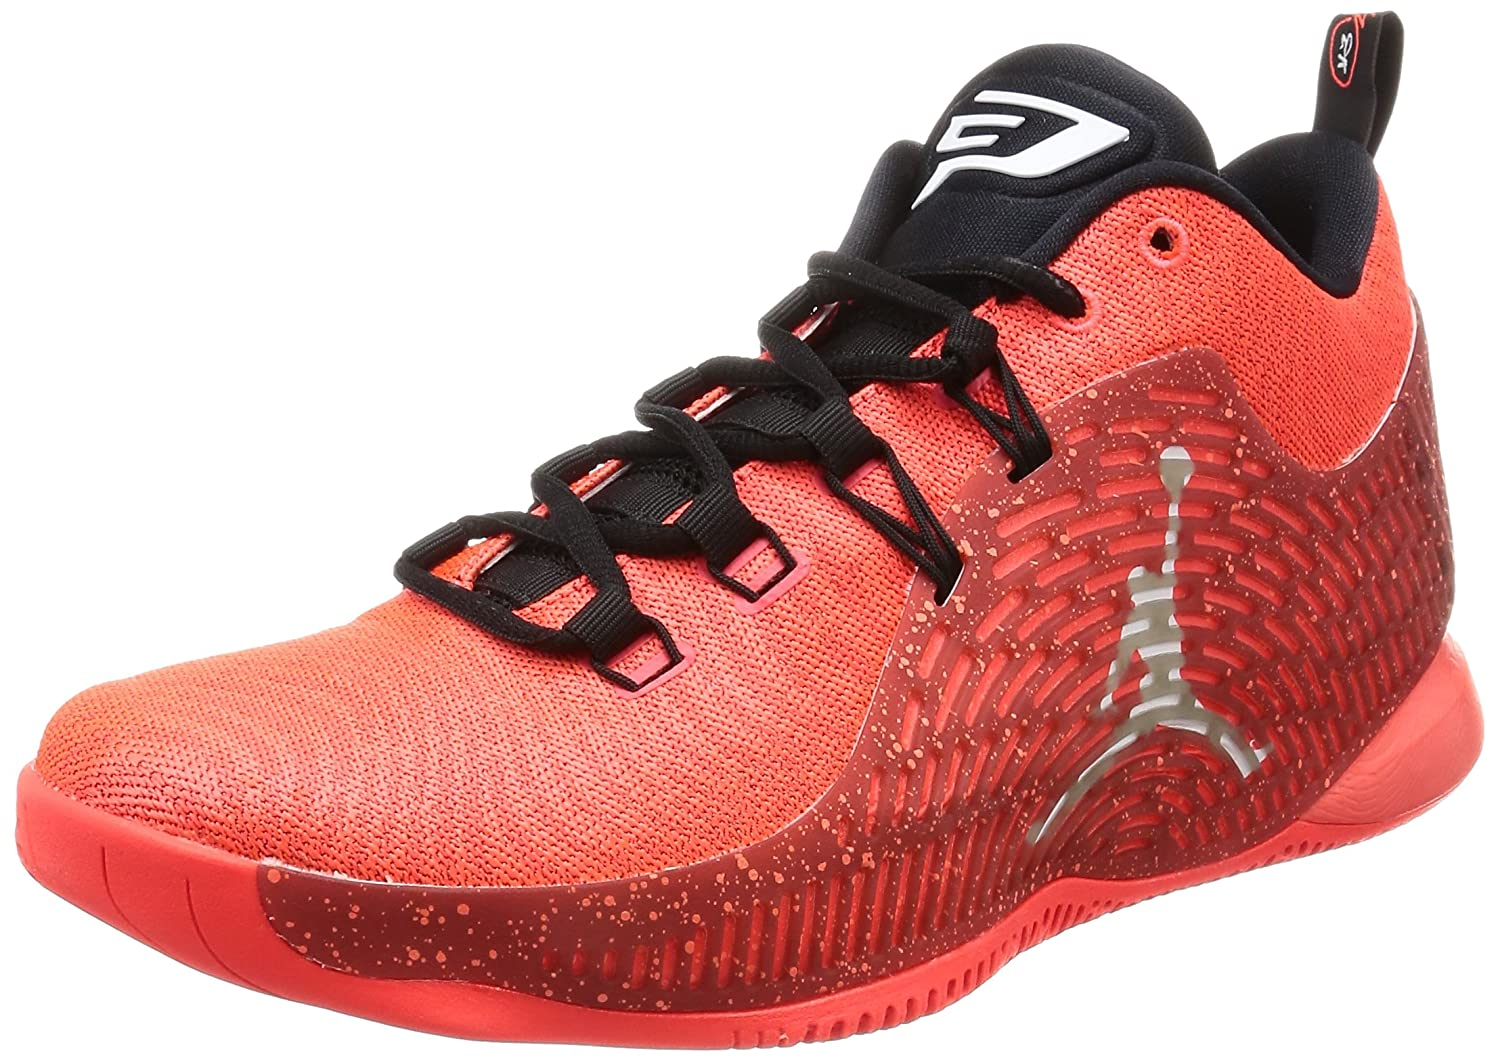 detailed look 2ed1e 1341c Amazon.com   Jordan Mens CP3.X Black Bright Mango Size 12   Shoes